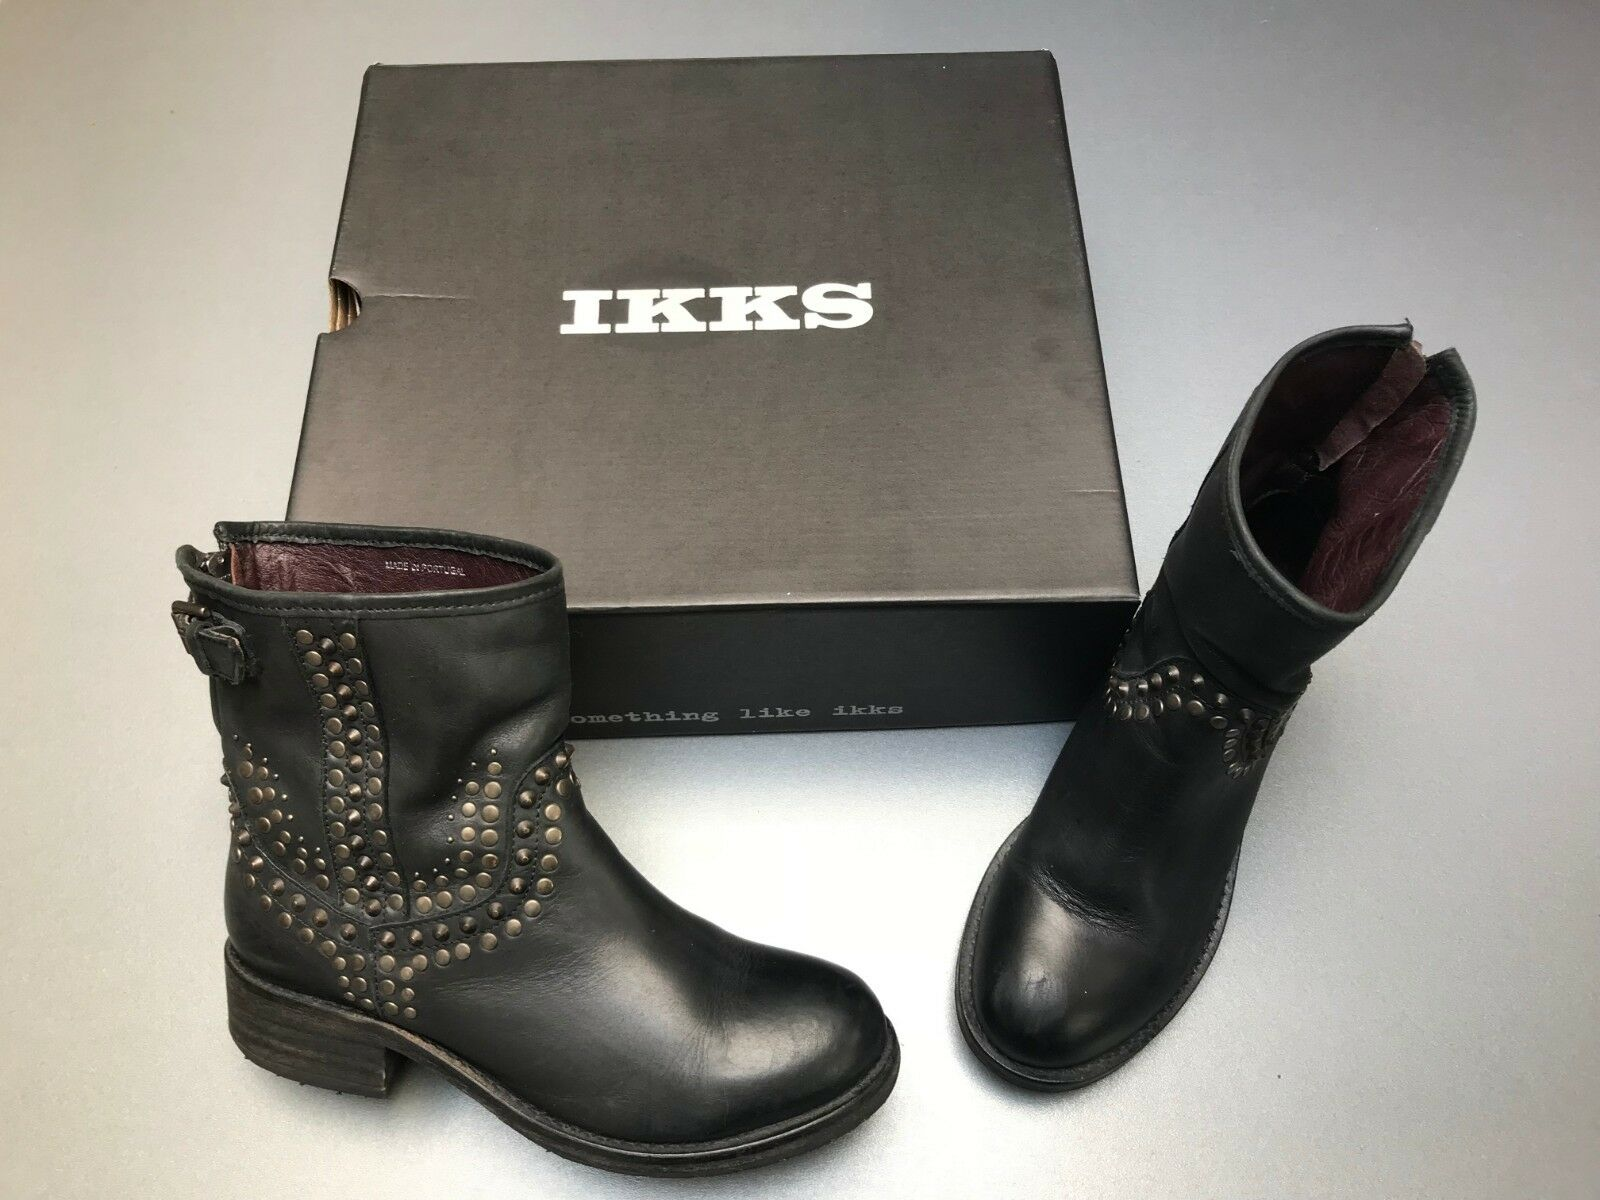 Bottines IKKS - Pointure 37 (A)